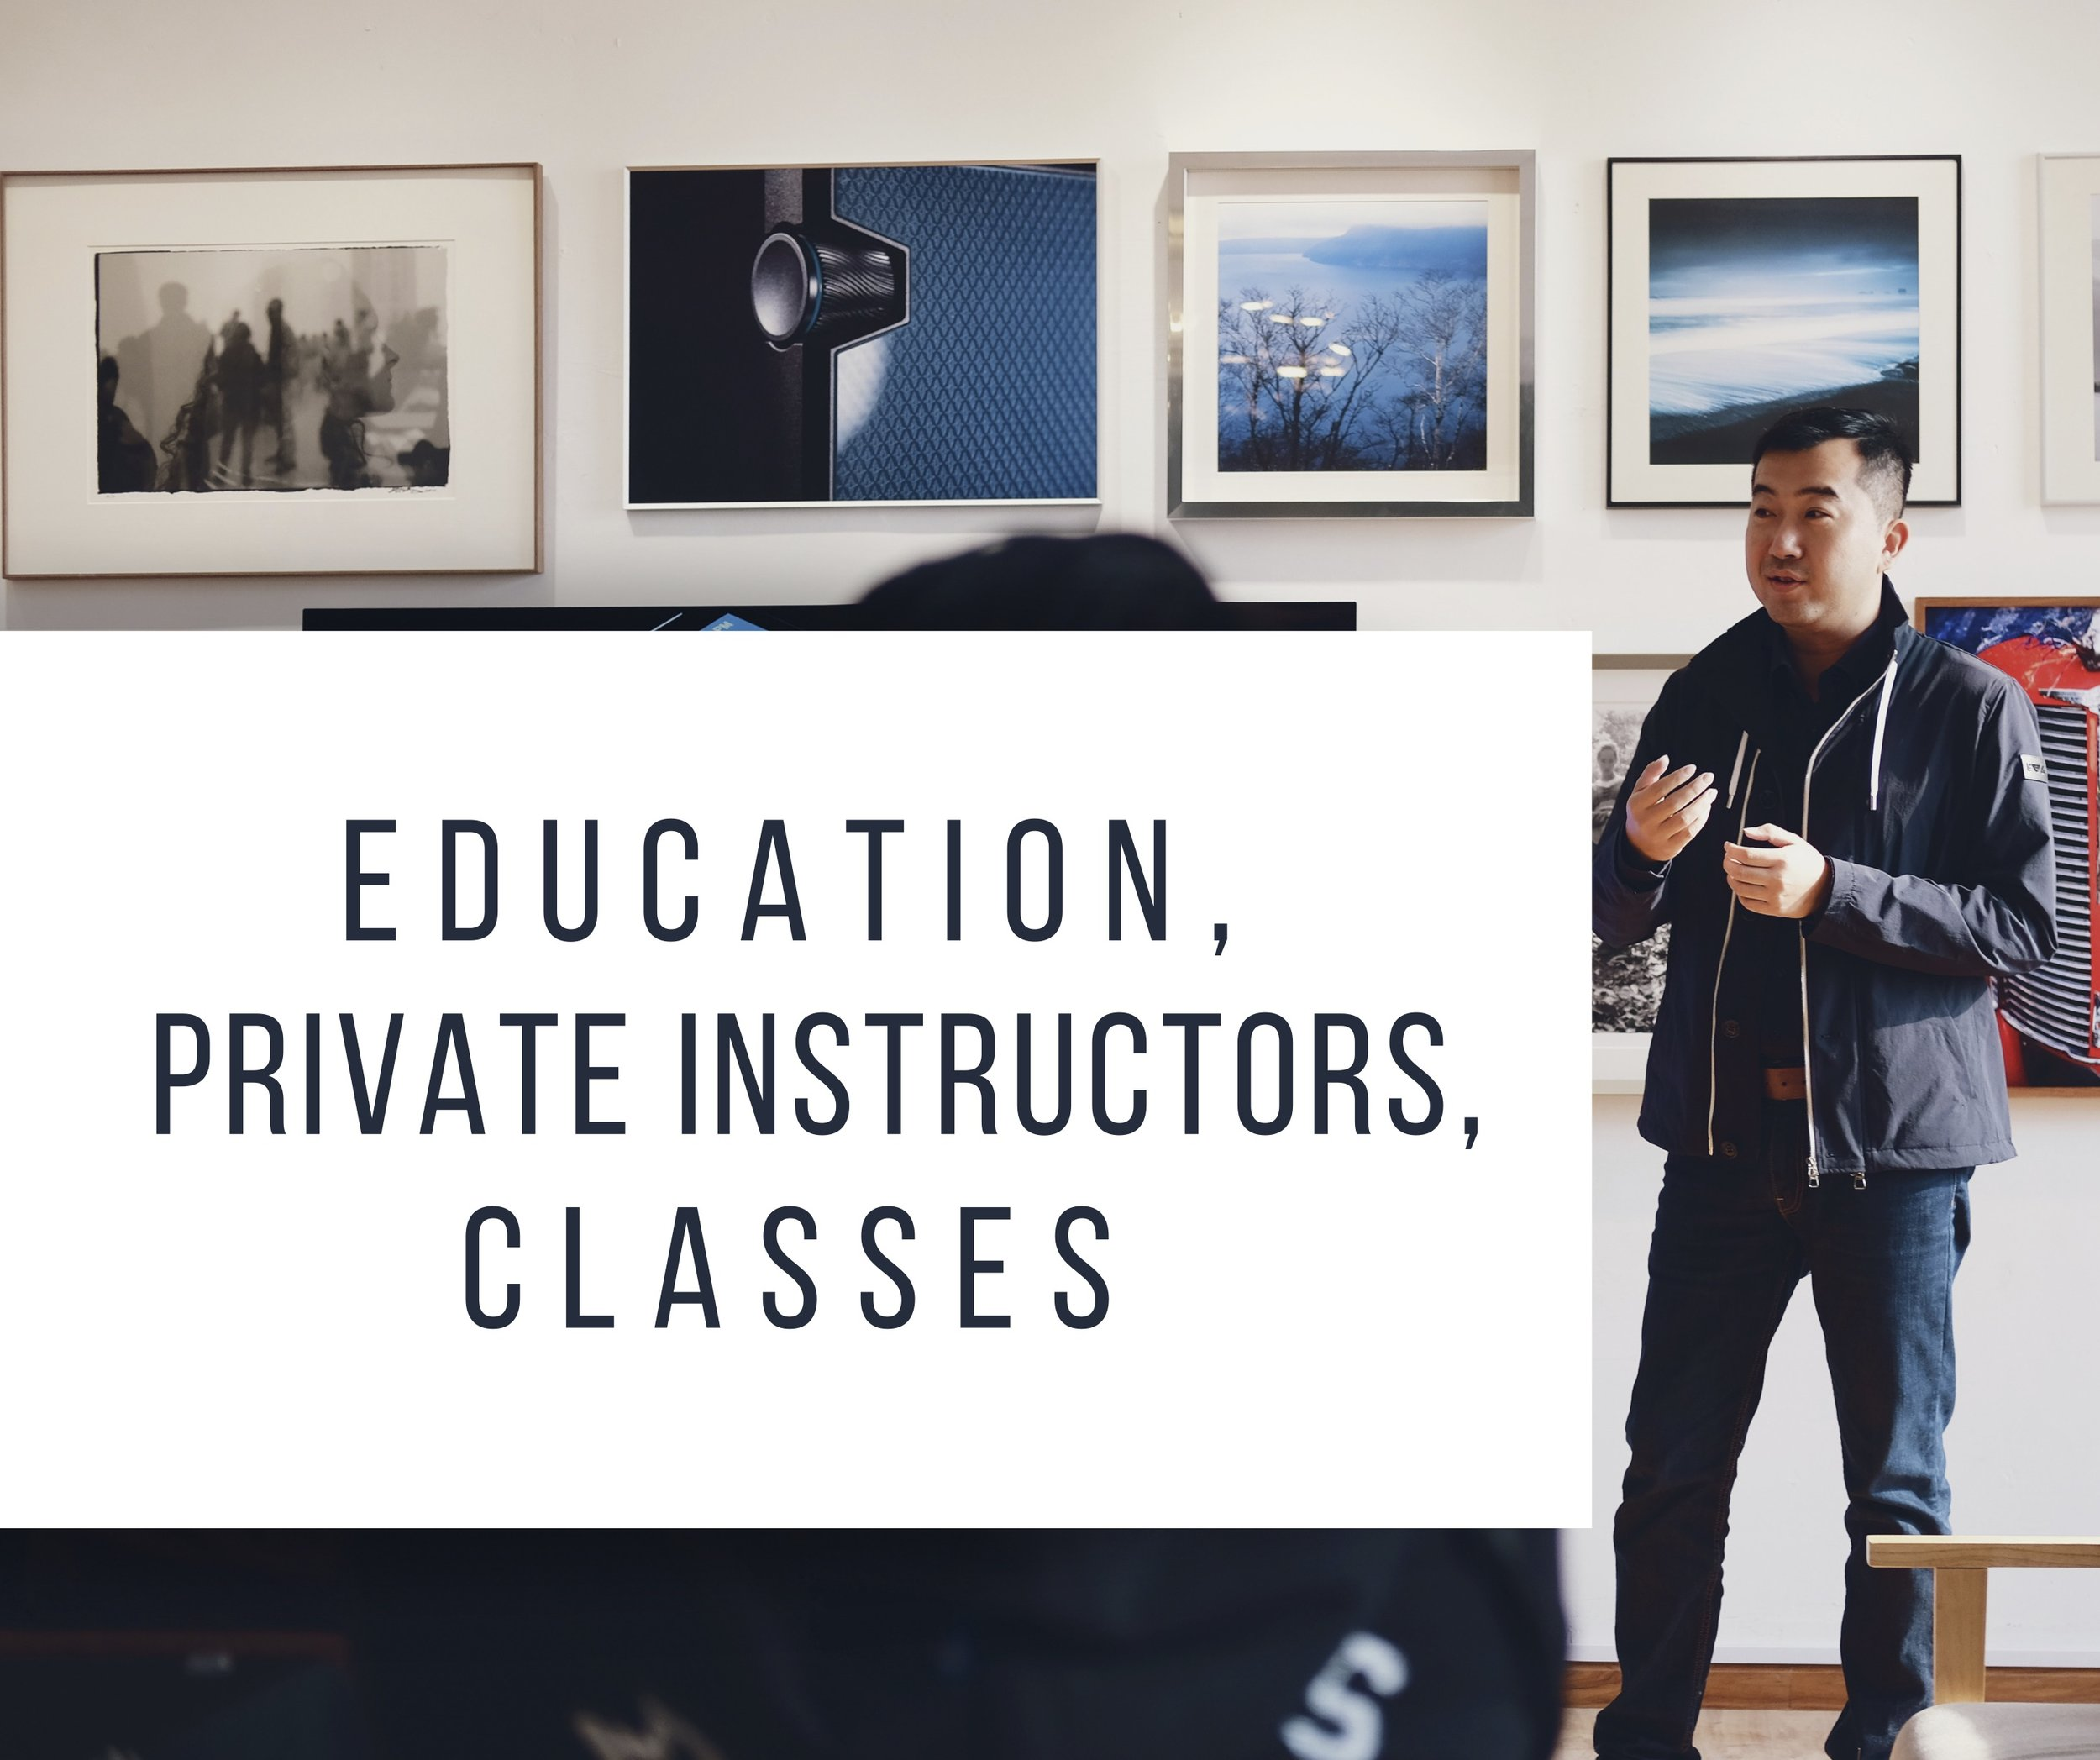 Education & private instructors.png